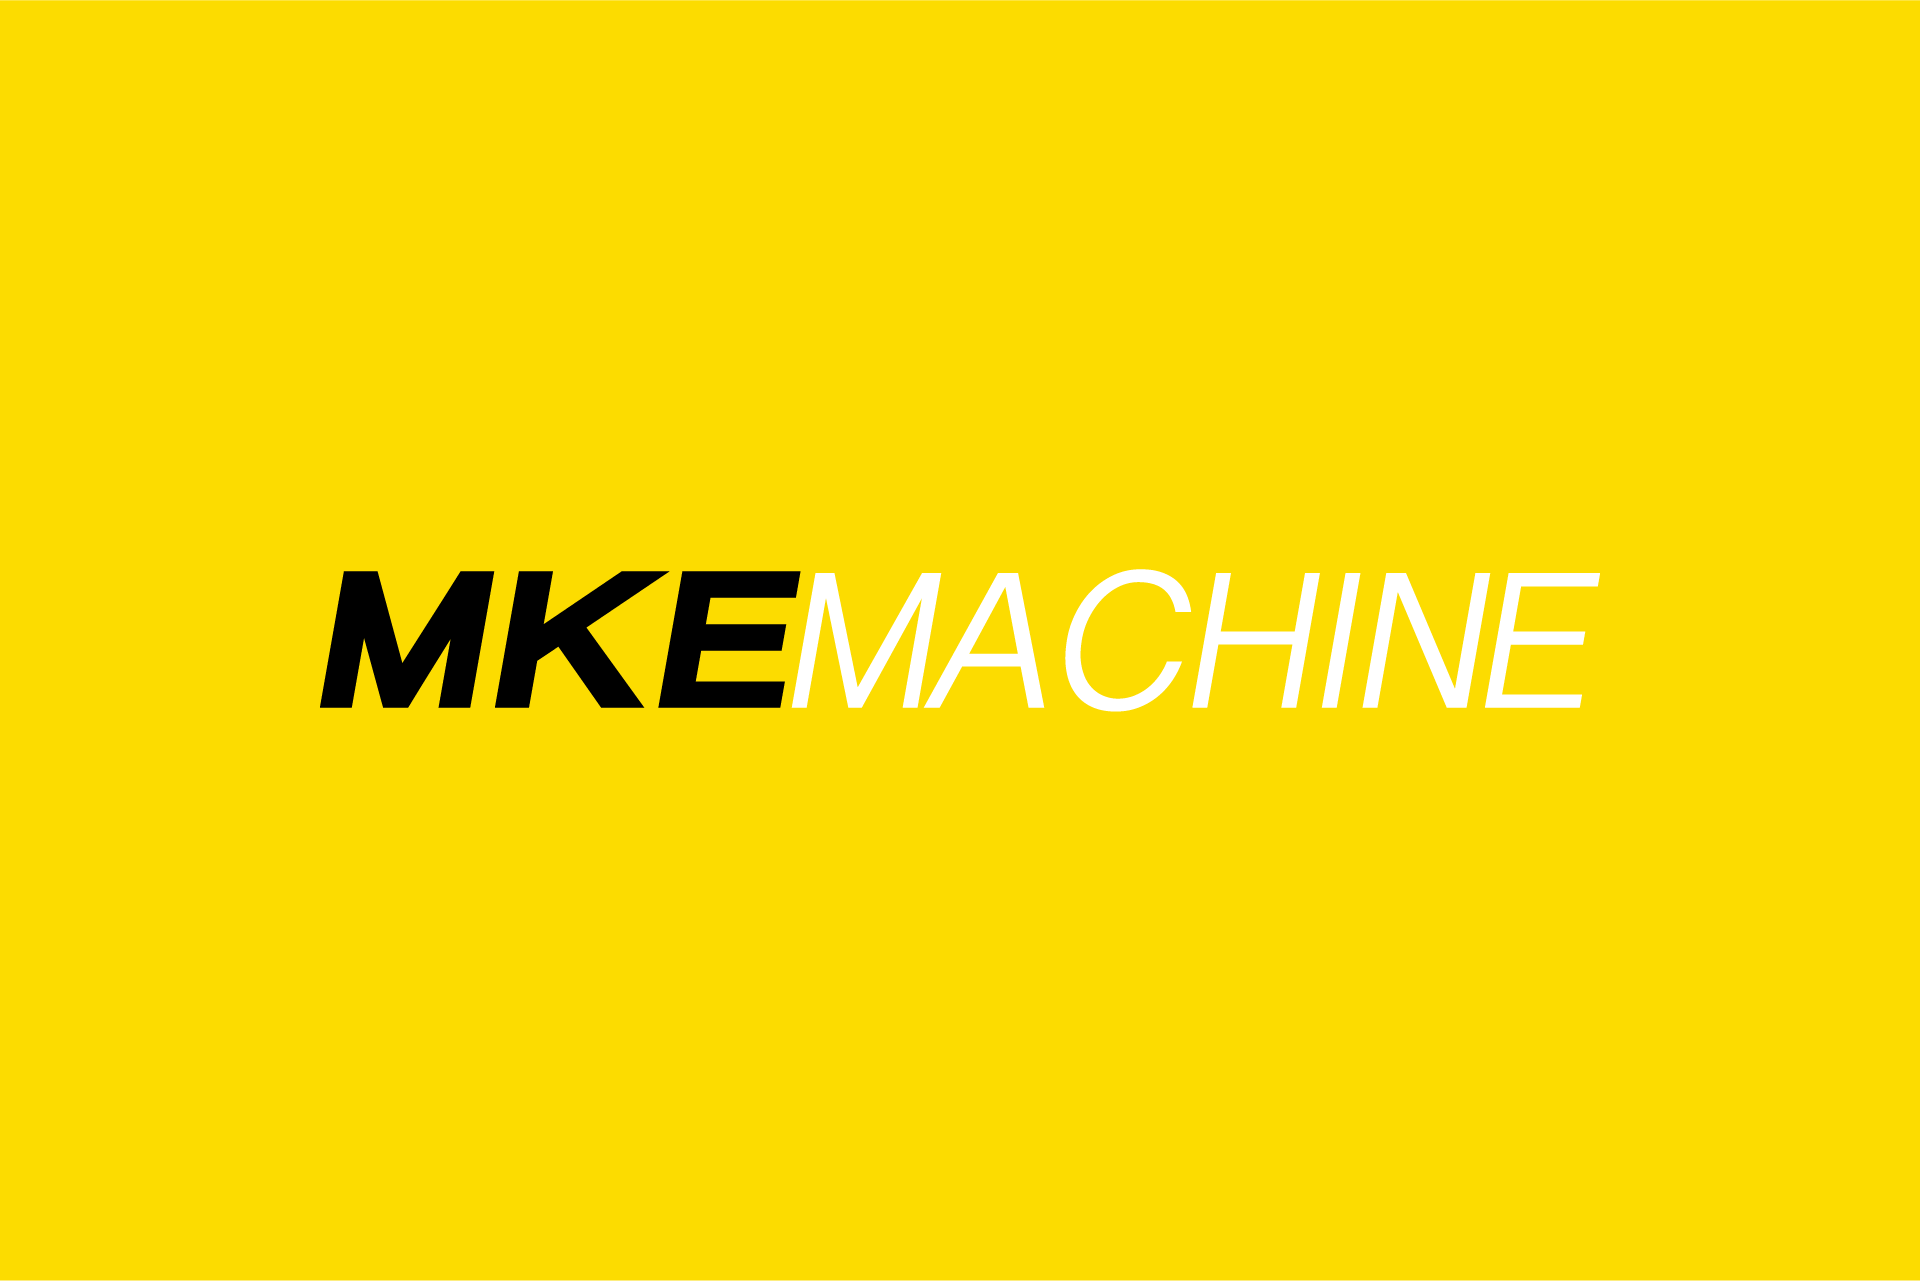 MKE Machine Logo Design Color Theory 4